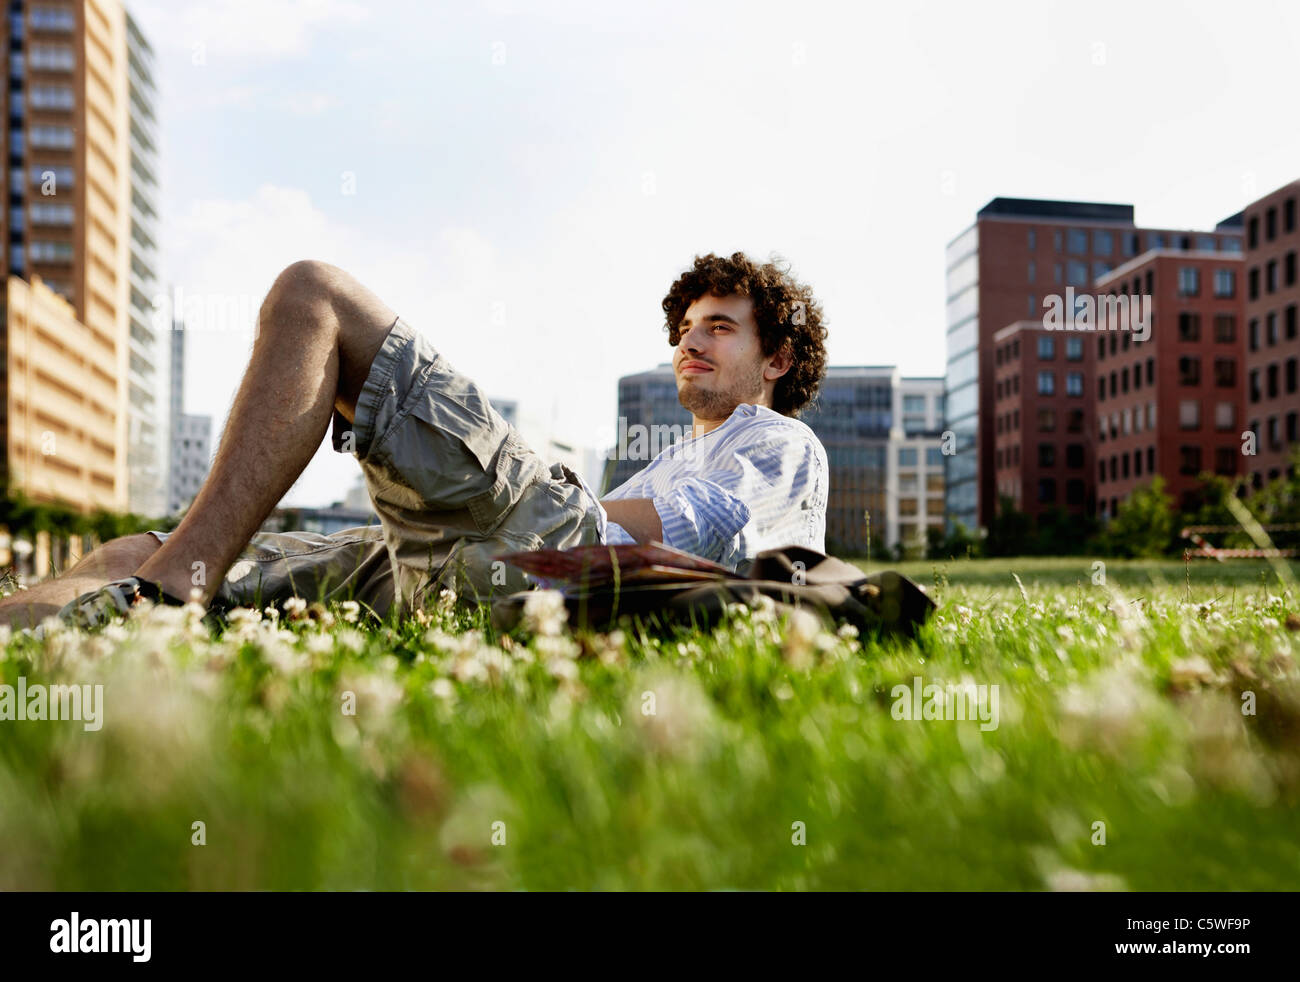 Germany, Berlin, Man relaxing on lawn, in background high rise buildings - Stock Image